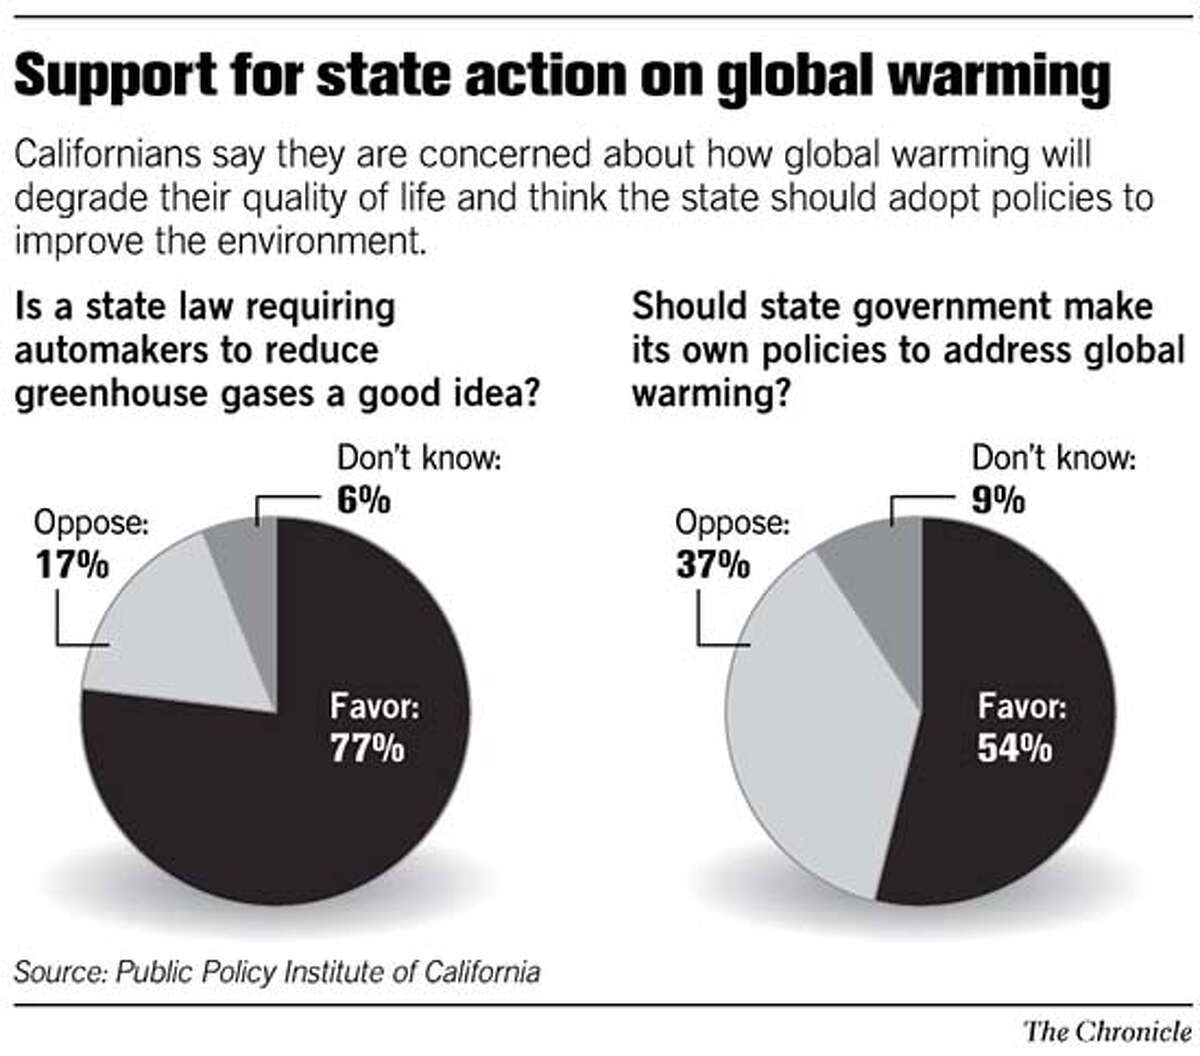 Support for State Action on Global warming